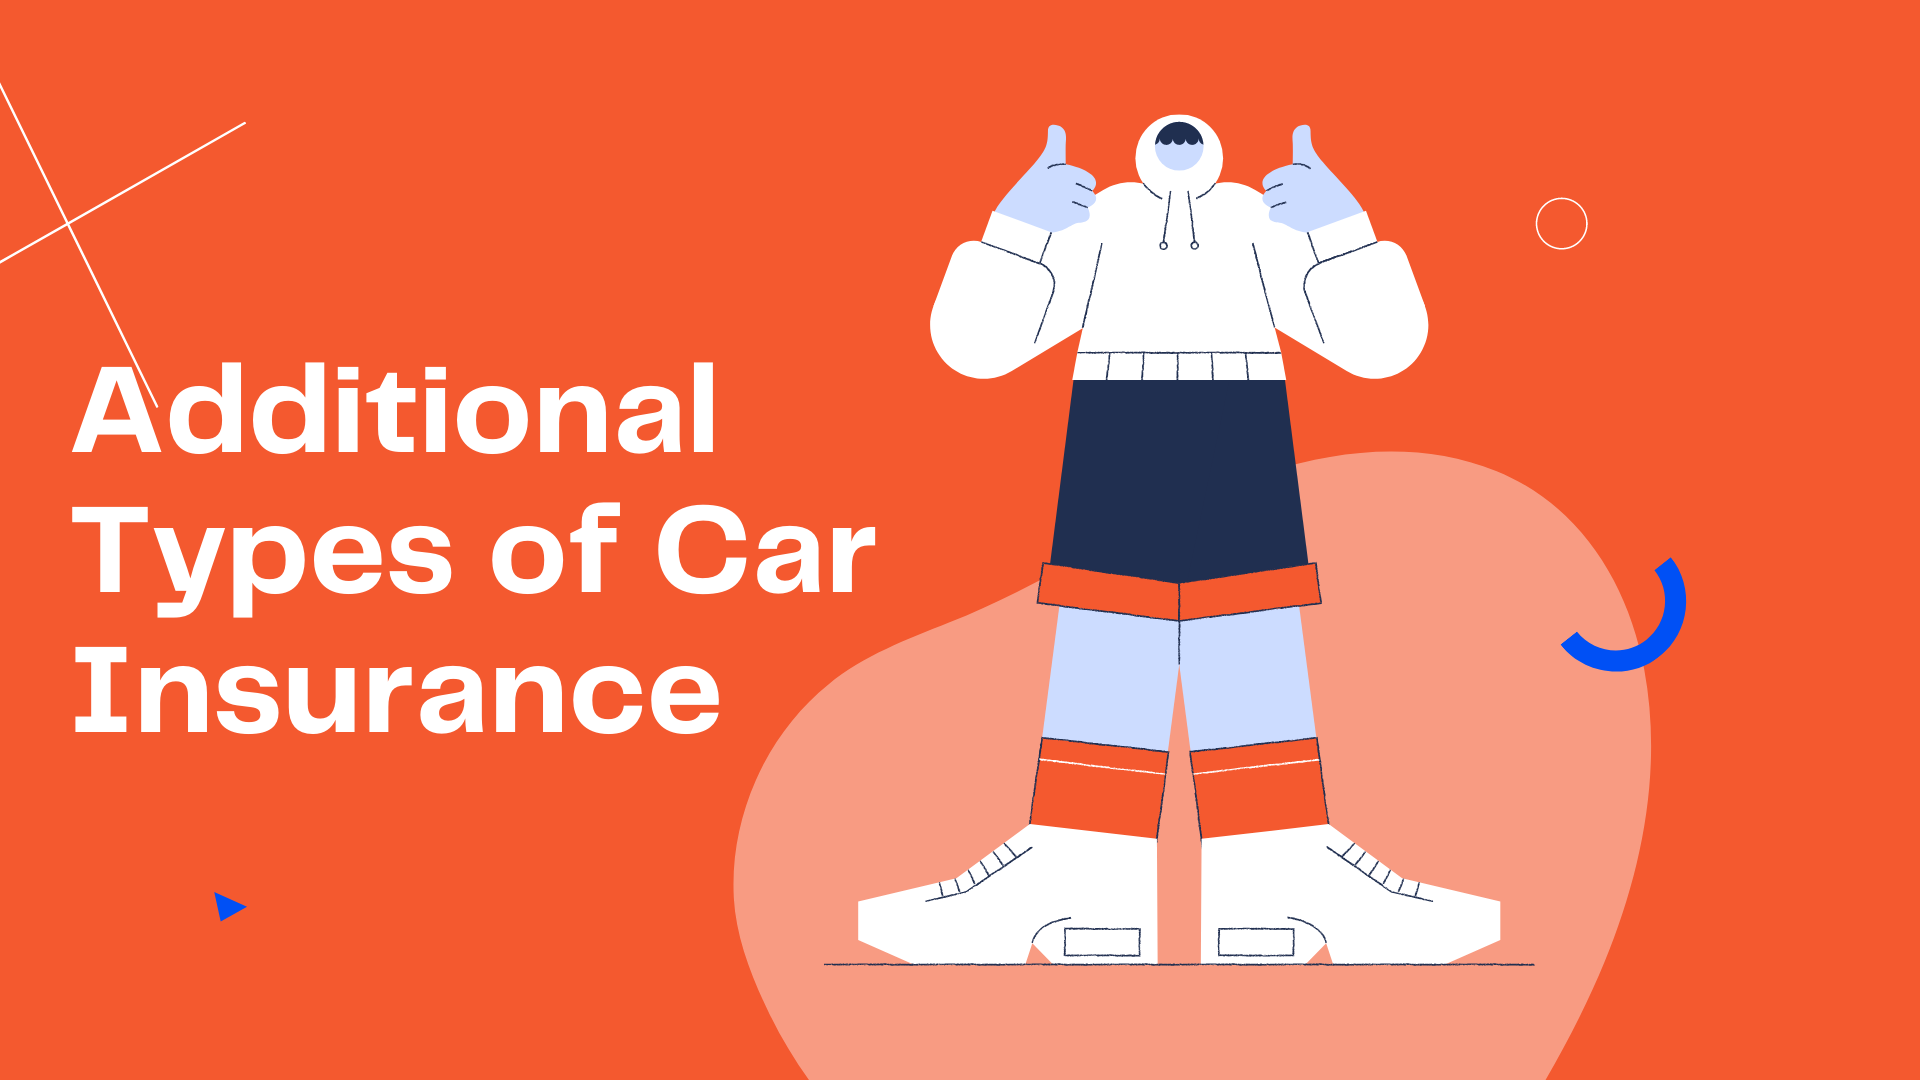 Additional types of car insurance